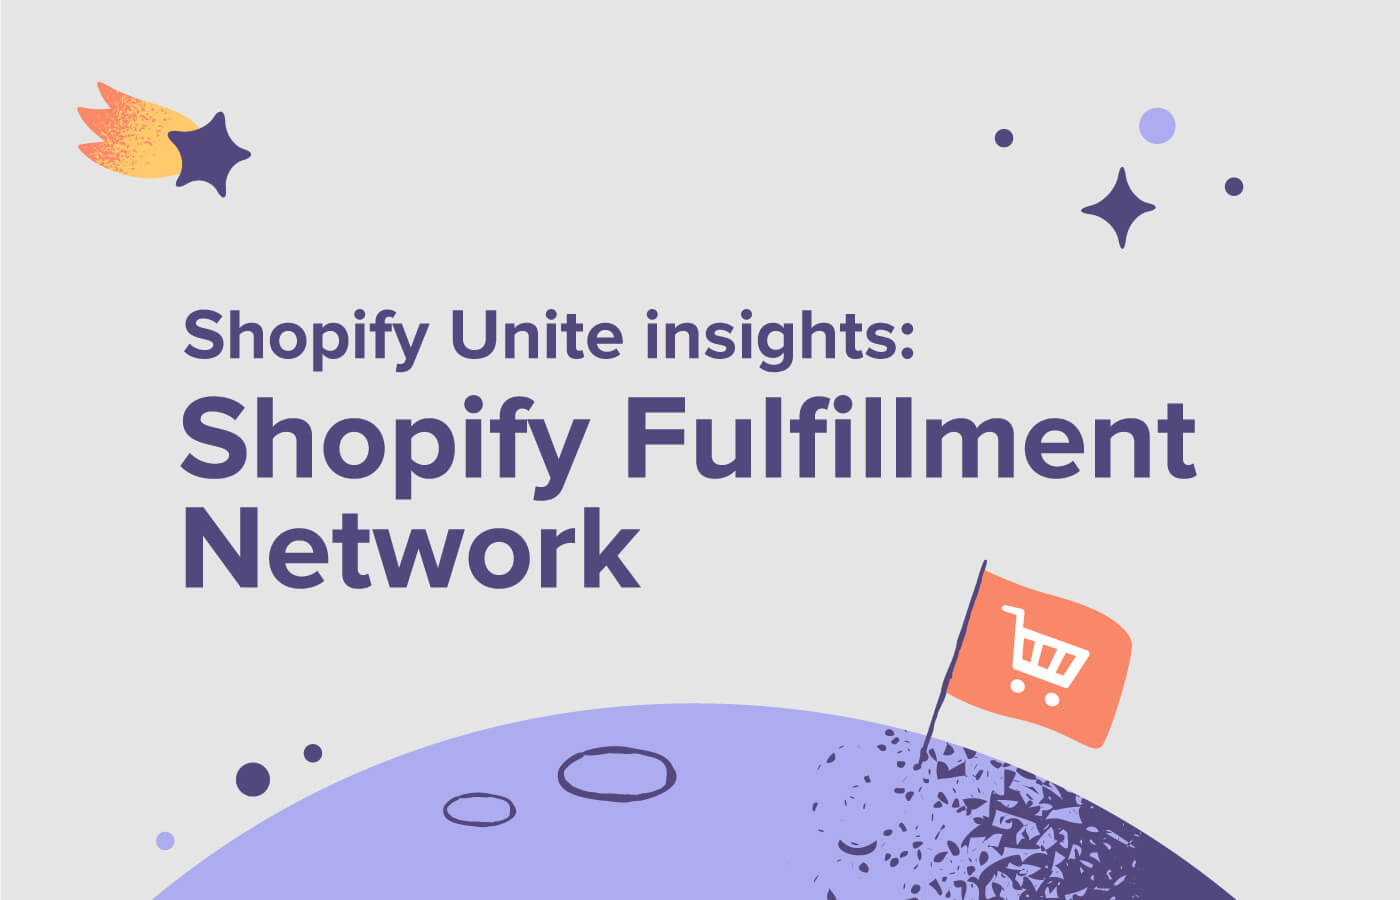 Shopify Unite insights - the Shopify Fulfillment Network